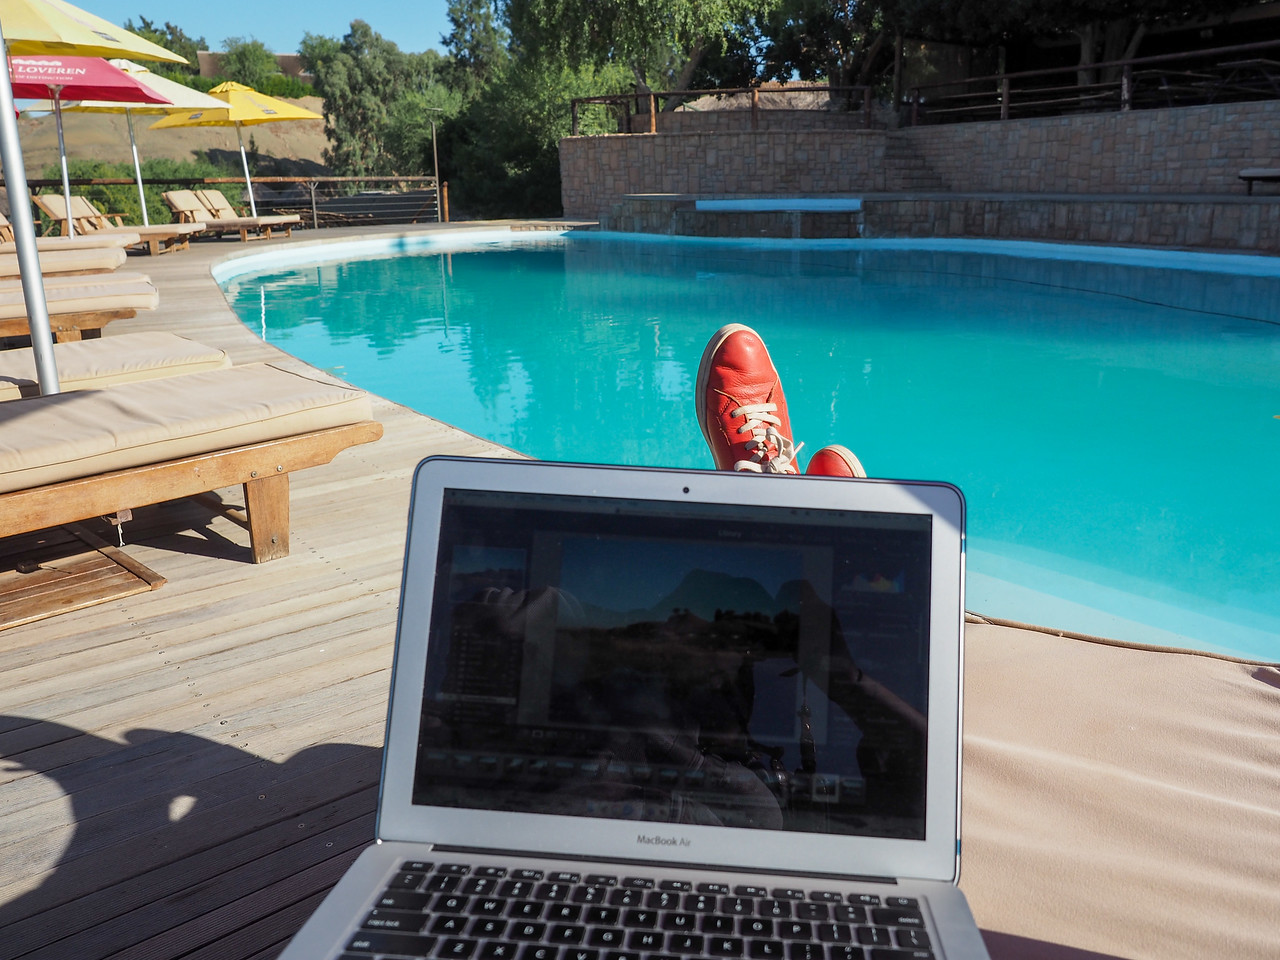 Working by a pool in Namibia